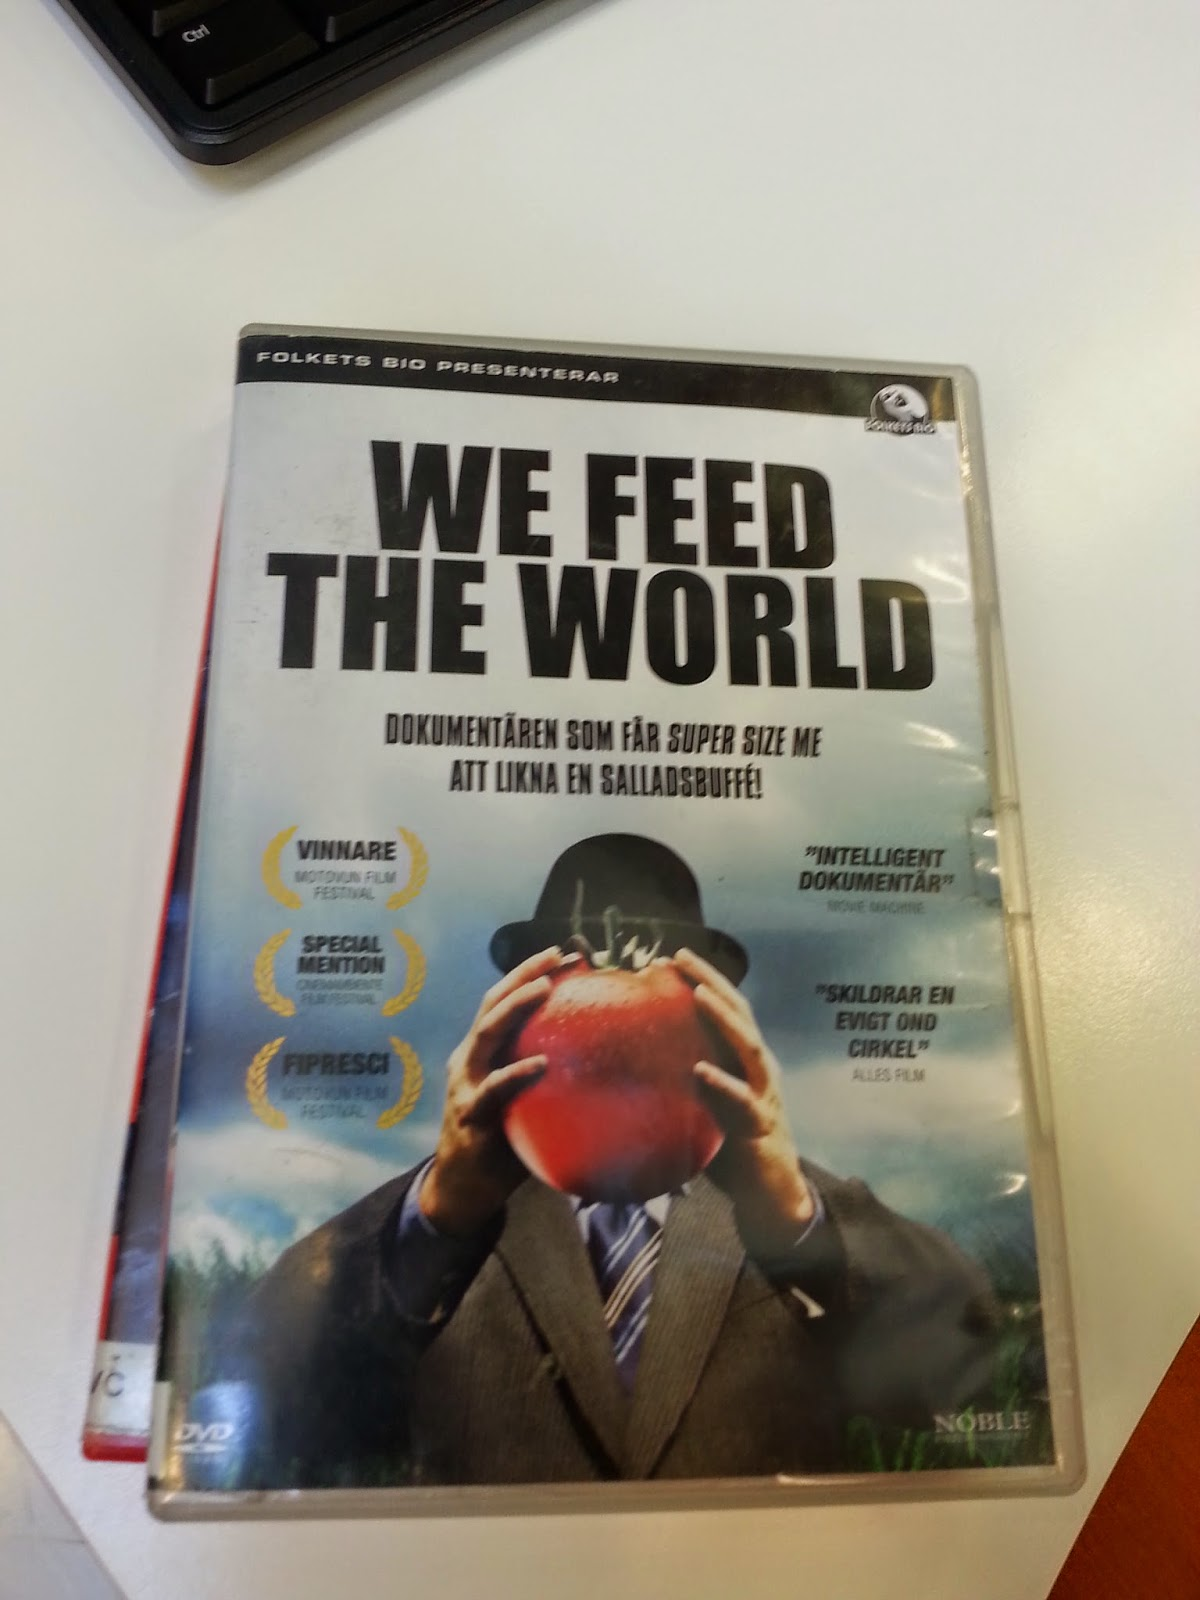 We Feed The World på Lunds stadbibliotek - Rörelse för djurrätt